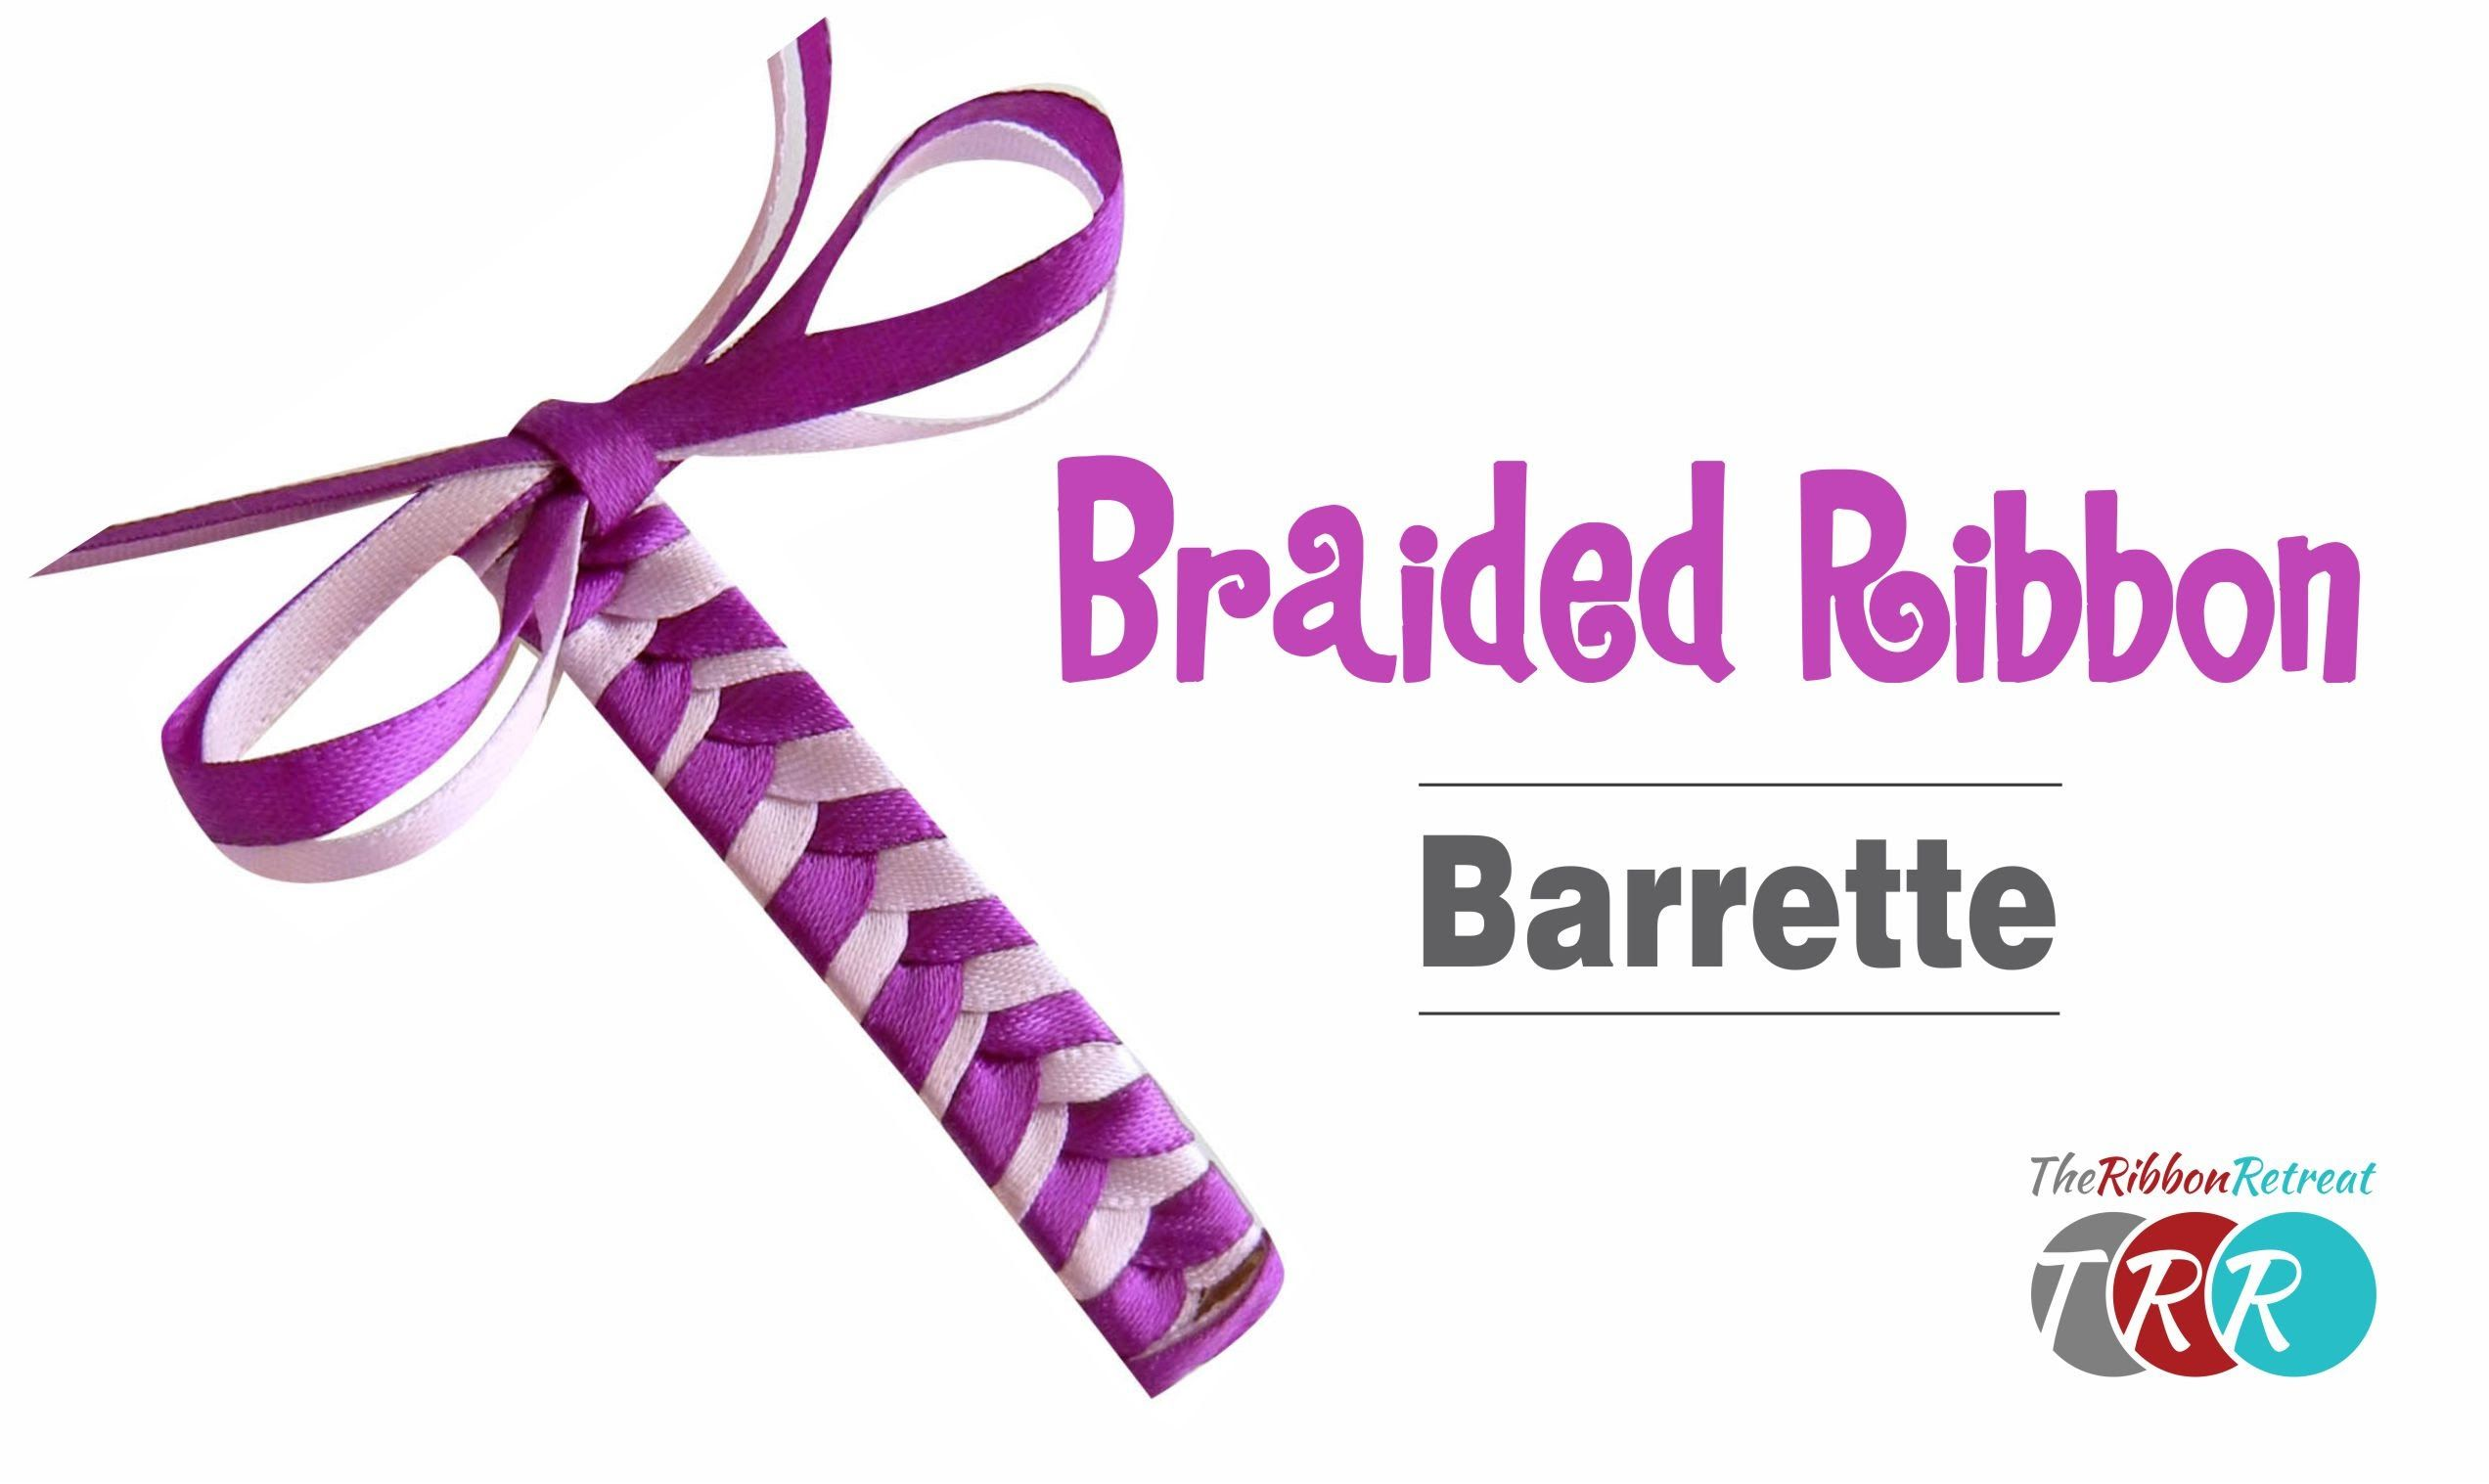 How To Make A Braided Ribbon Barrette Theribbonretreat Com Ribbon Barrettes Ribbon Barrettes Diy Ribbon Hair Clips